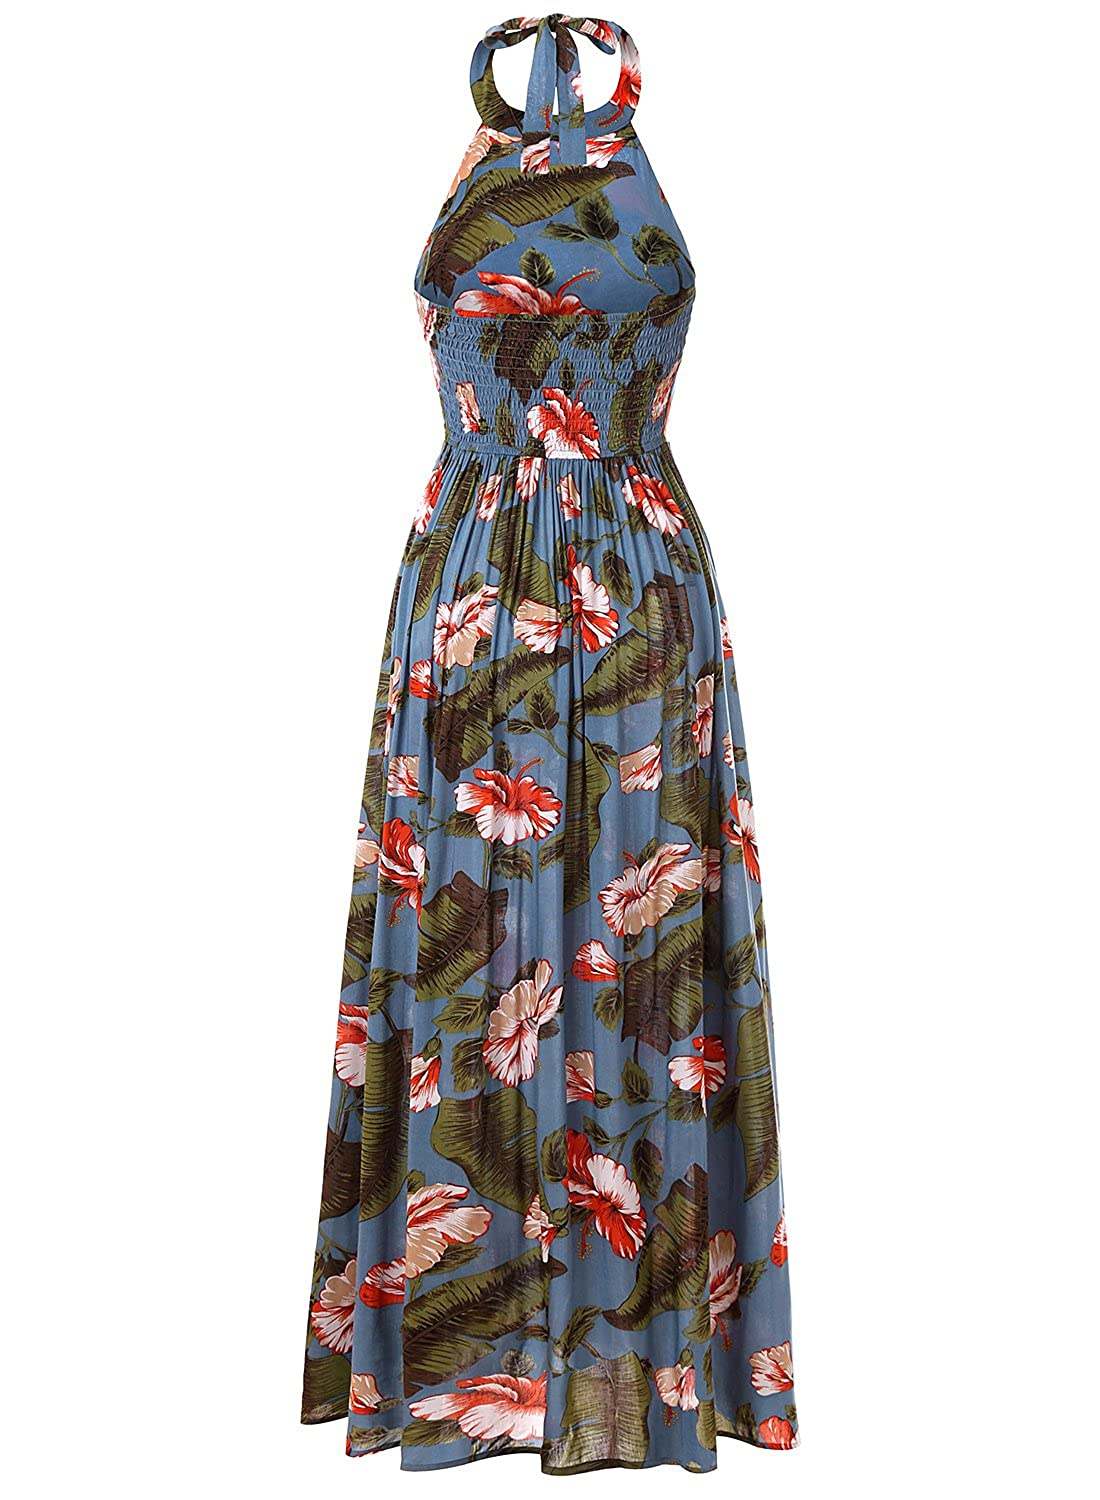 296454af3539 Blooming Jelly Women s Tropical Sleeveless Halter Neck Criss Cross Backless  Floral Print Maxi Dress (X-Small